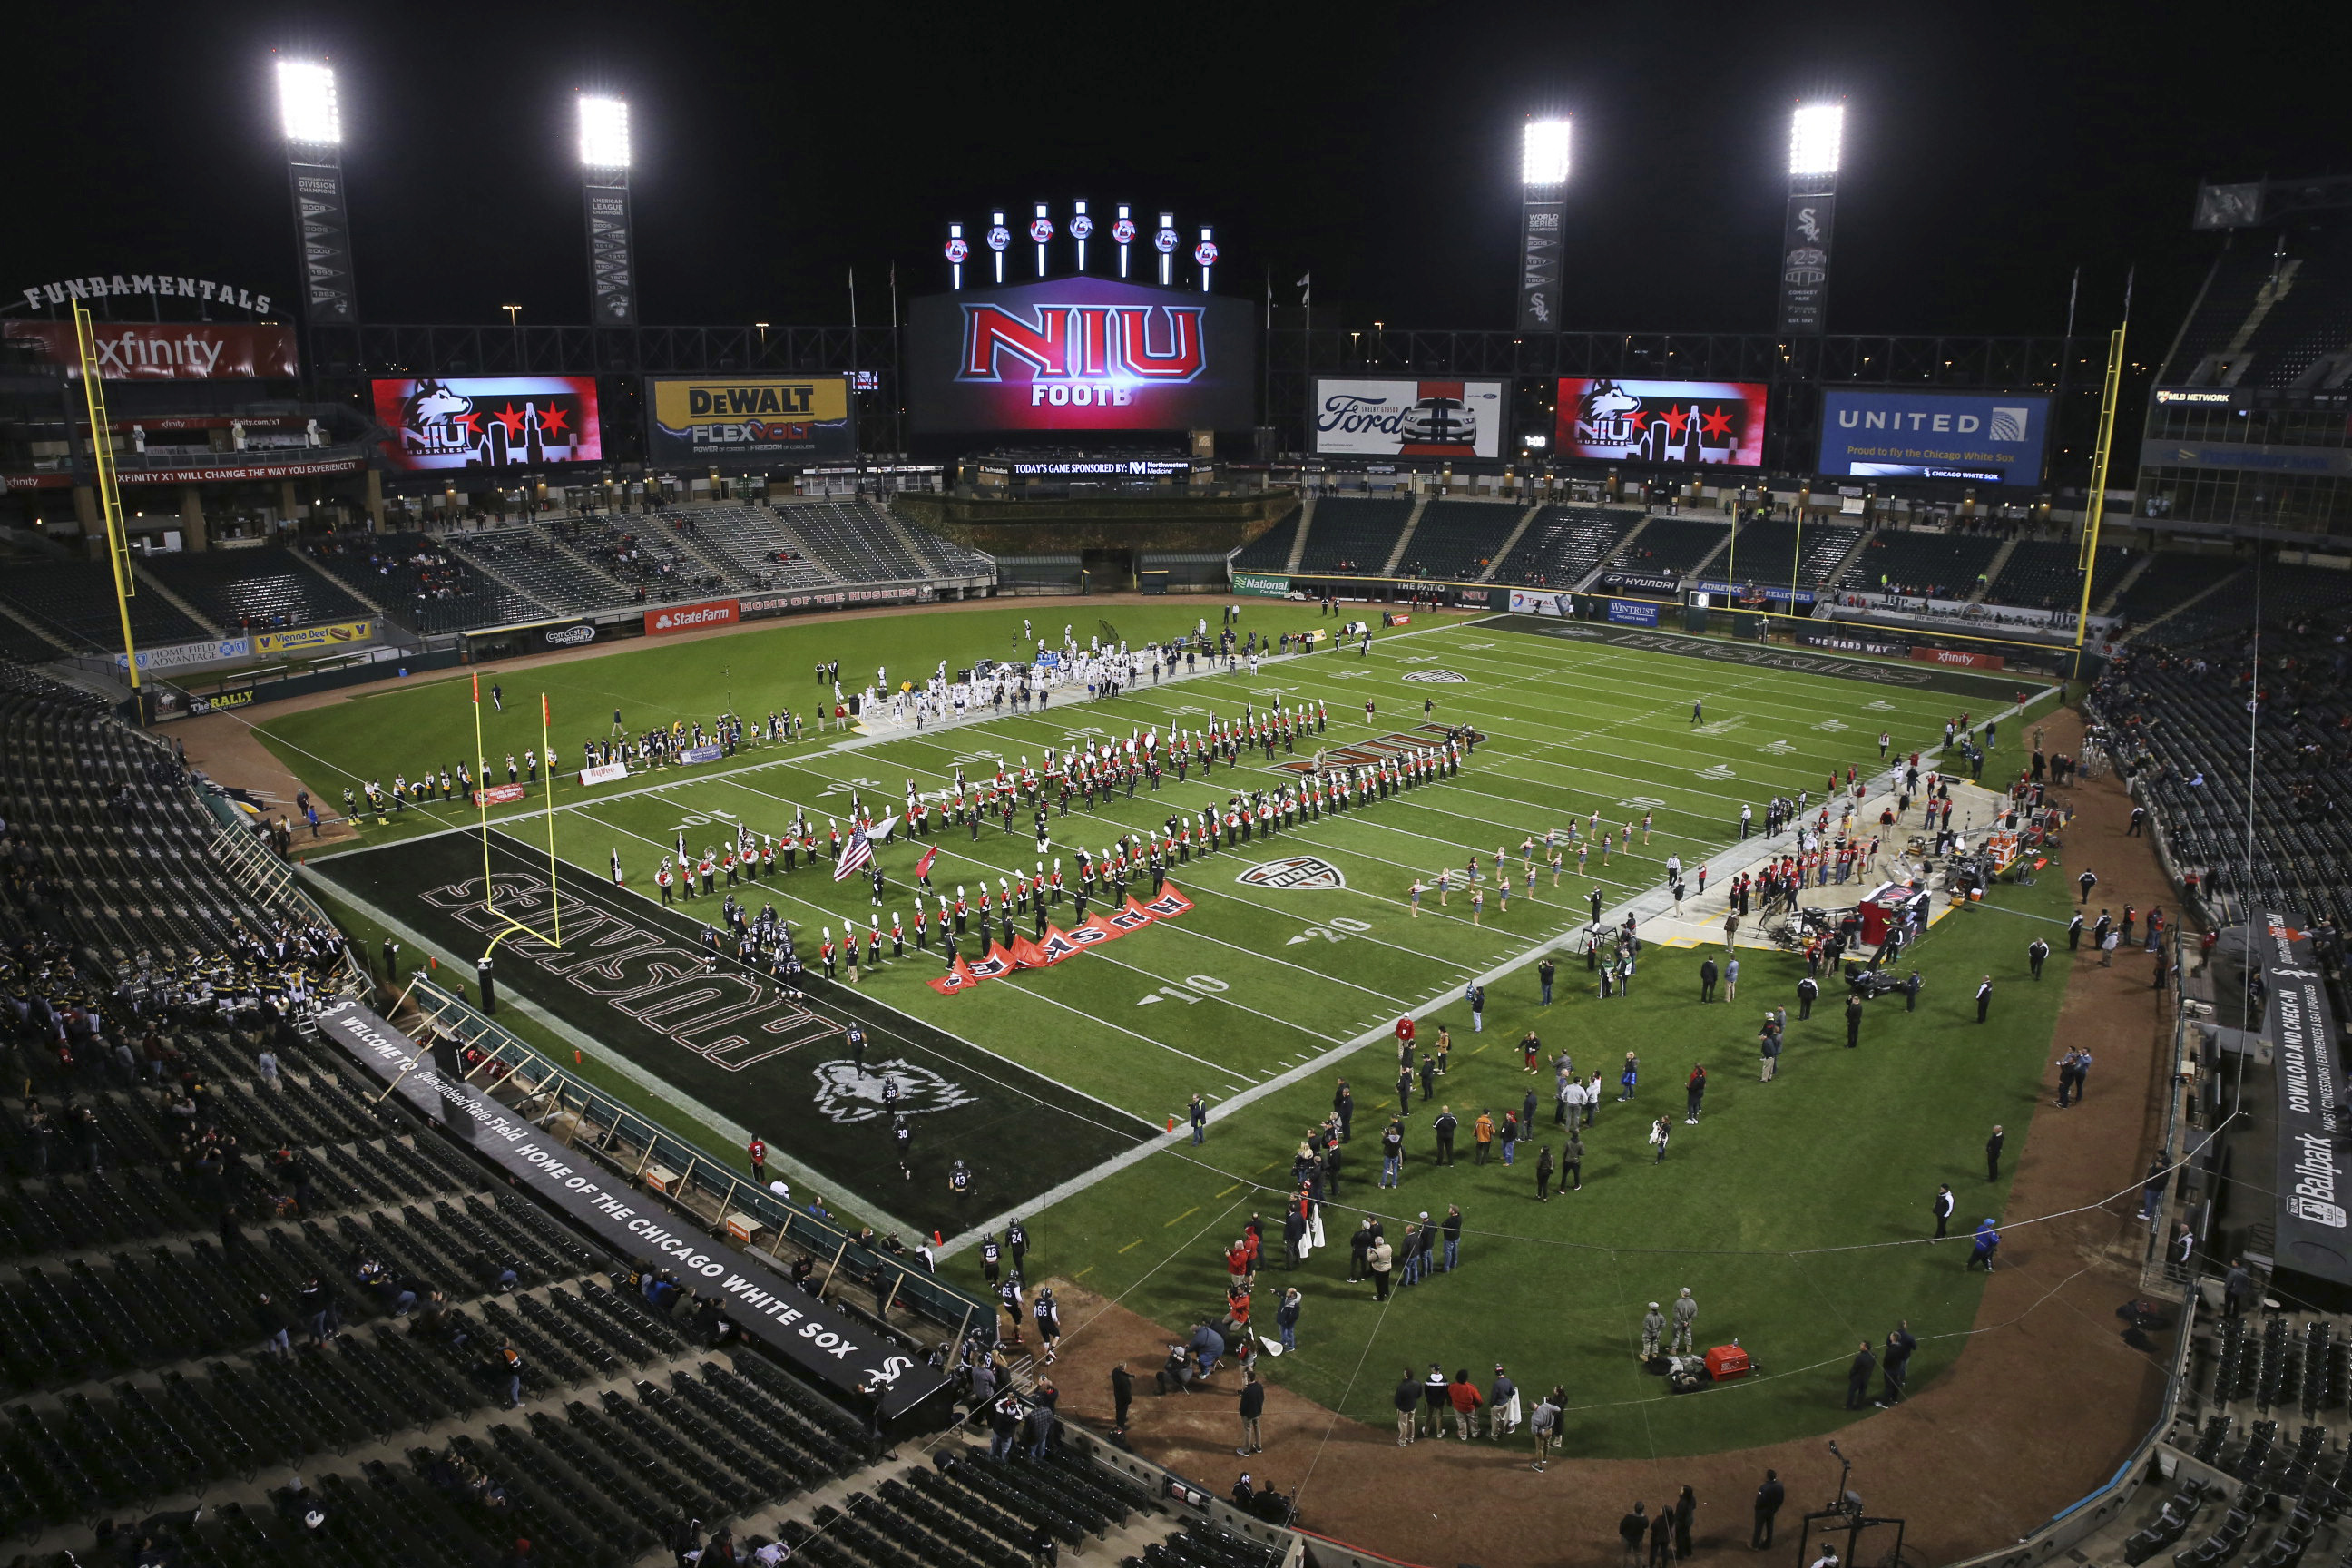 FILE - This Nov. 9, 2016 file photo shows Northern Illinois players taking the field for an NCAA college football game against Toledo in Chicago. As news about a football player boycott at Minnesota broke Thursday, Northern Illinois athletic director Sean